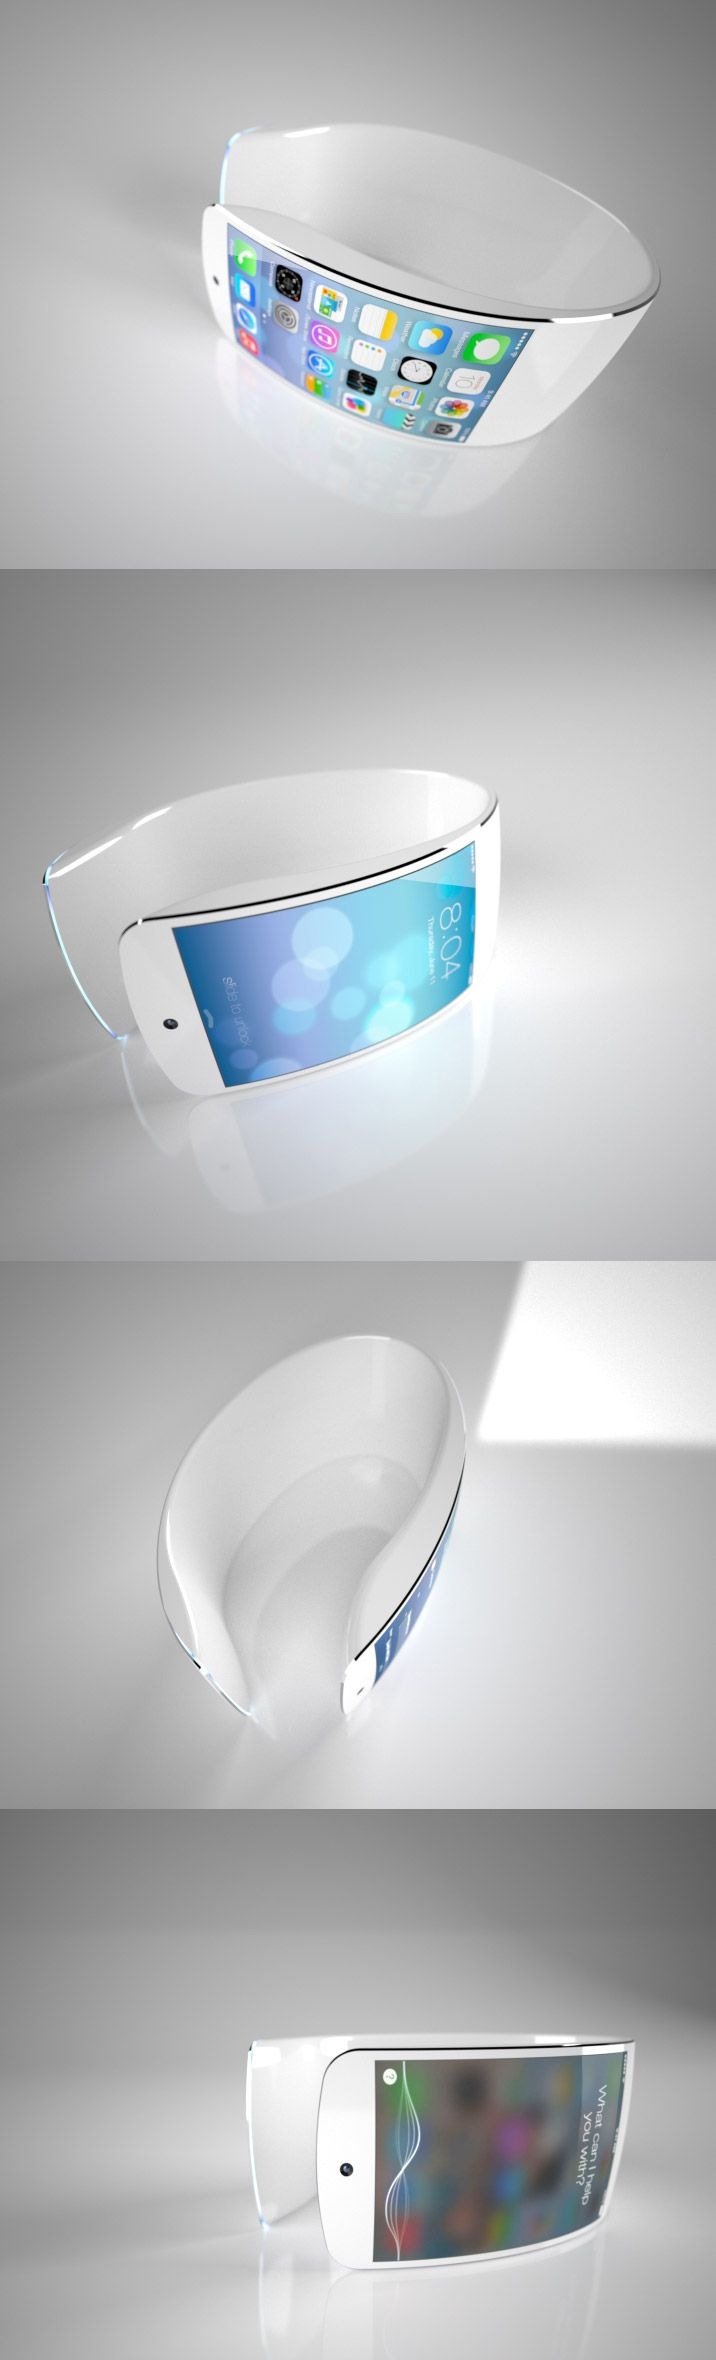 iWatch http://www.cssdesignawards.com/articles/23-smartwatch-ui-designs-concepts/114/